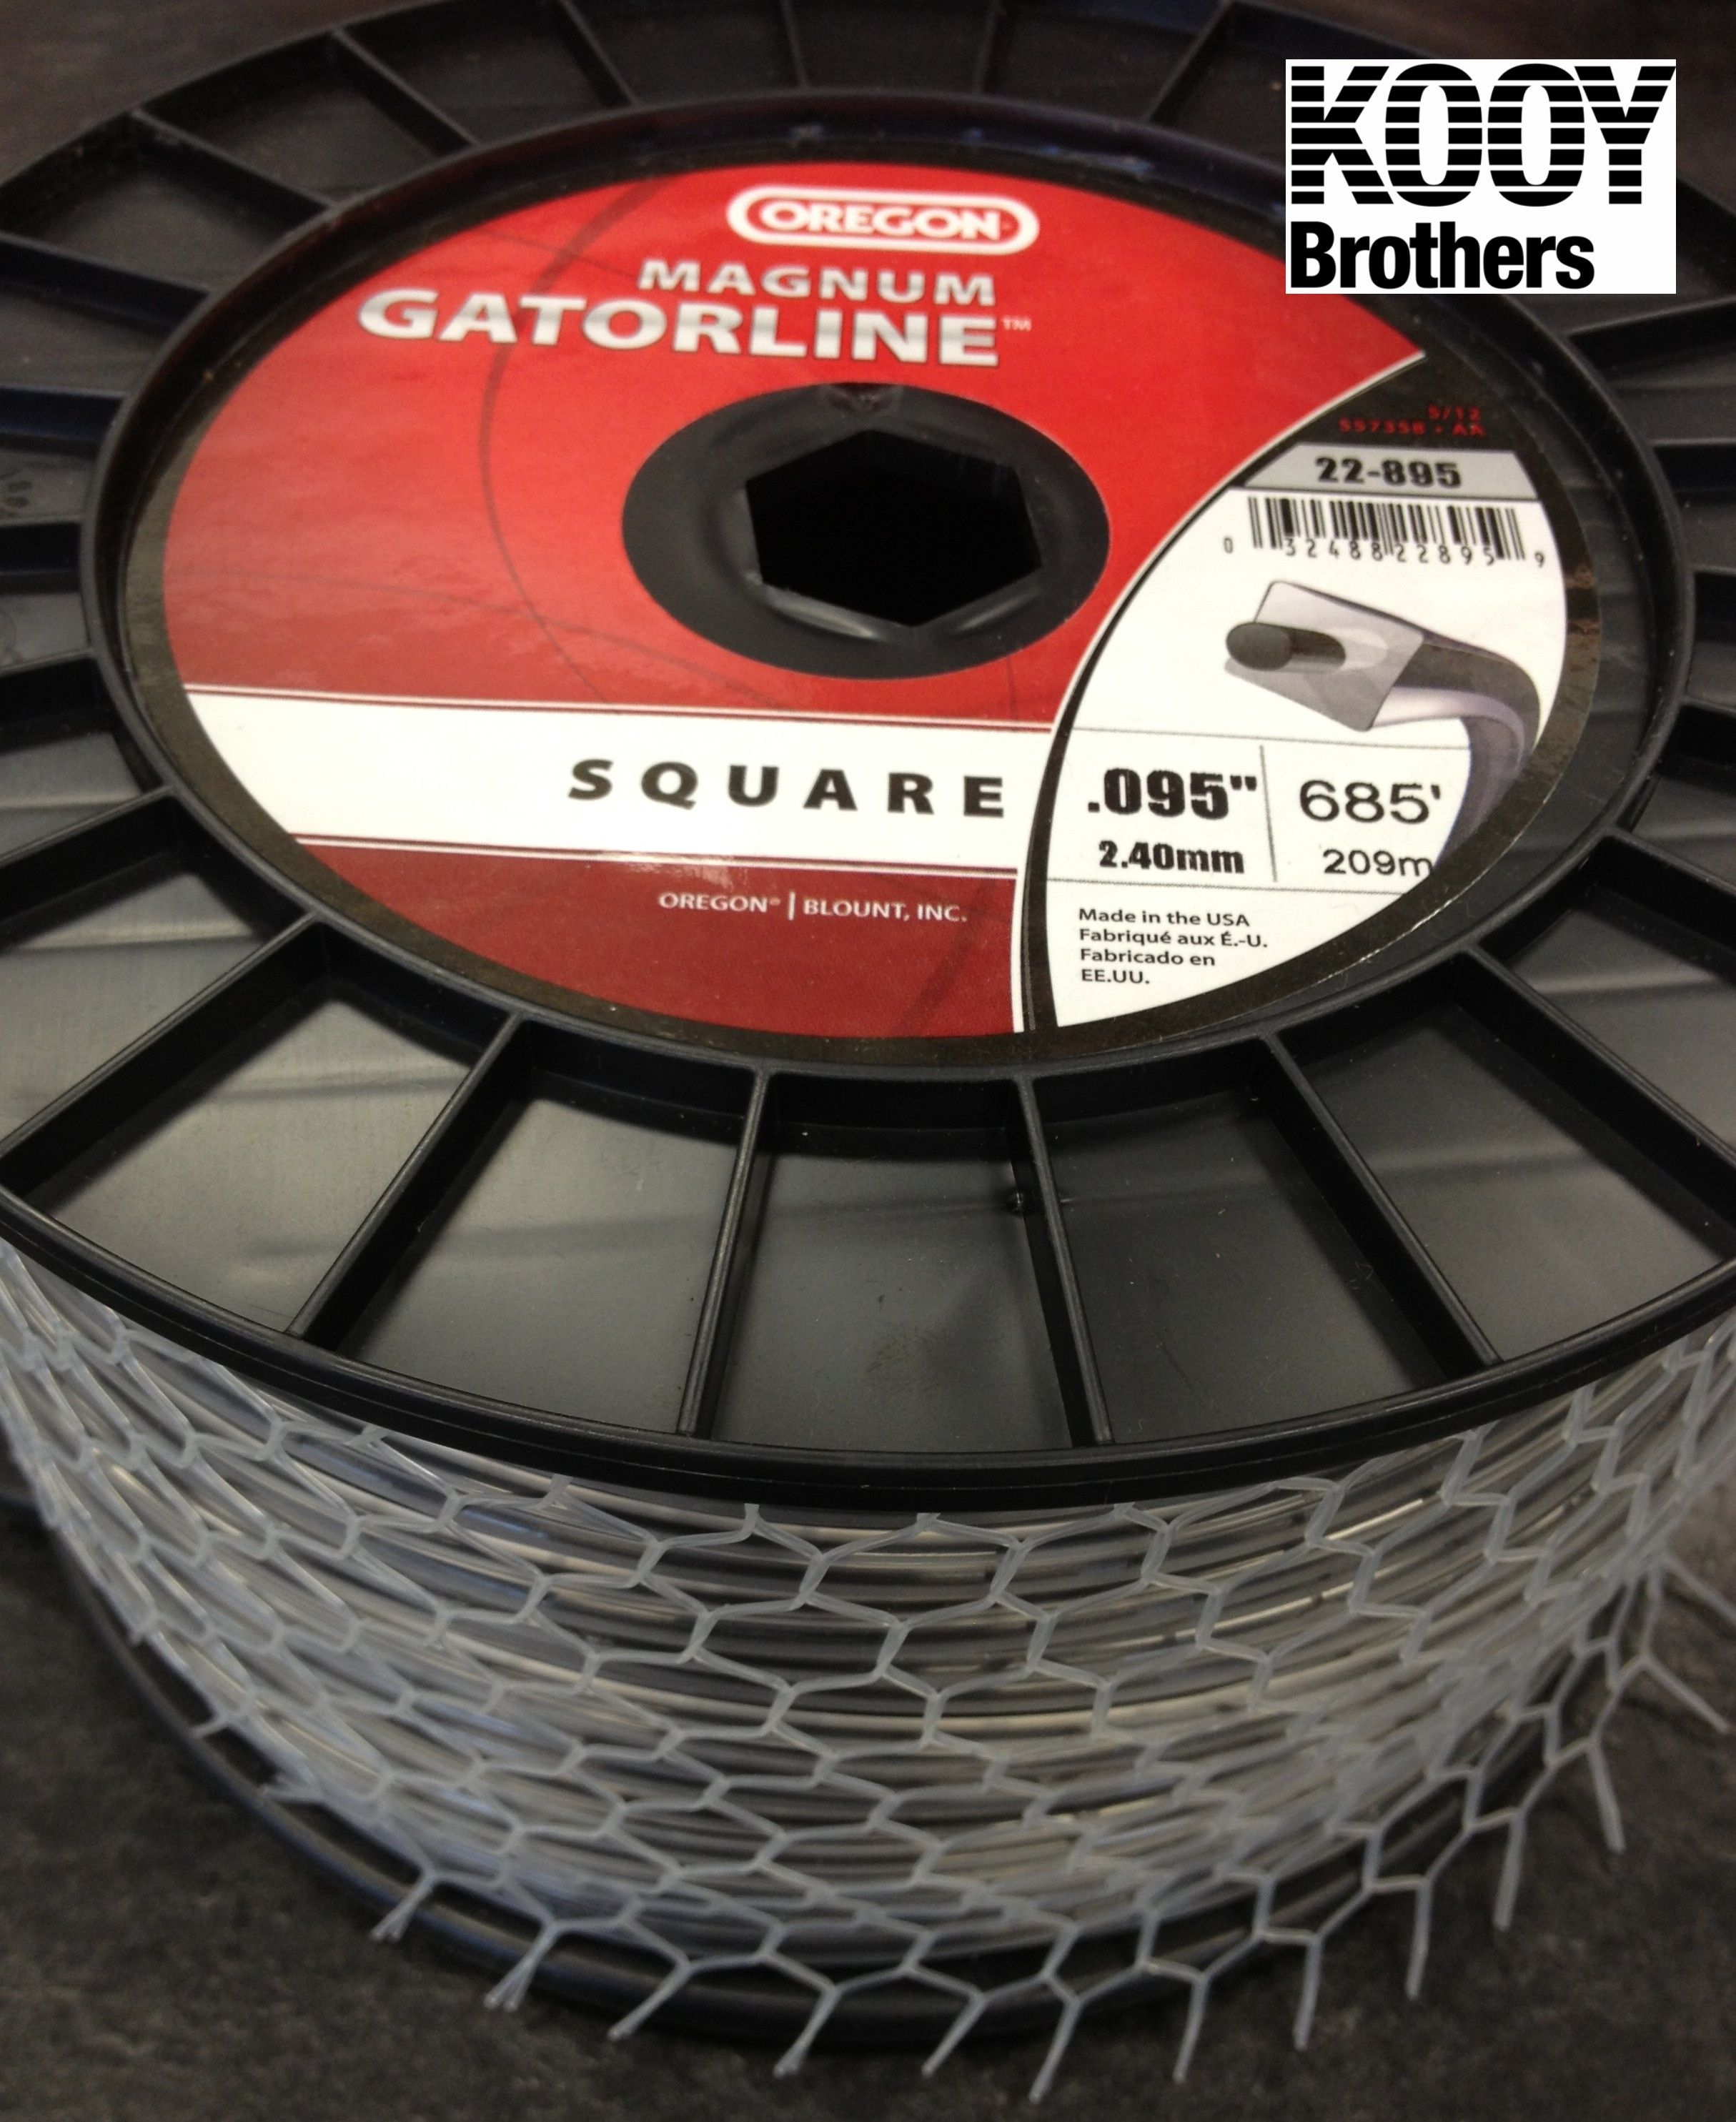 SQUARE Magnum Gatorline Trimmer Line 3lb roll